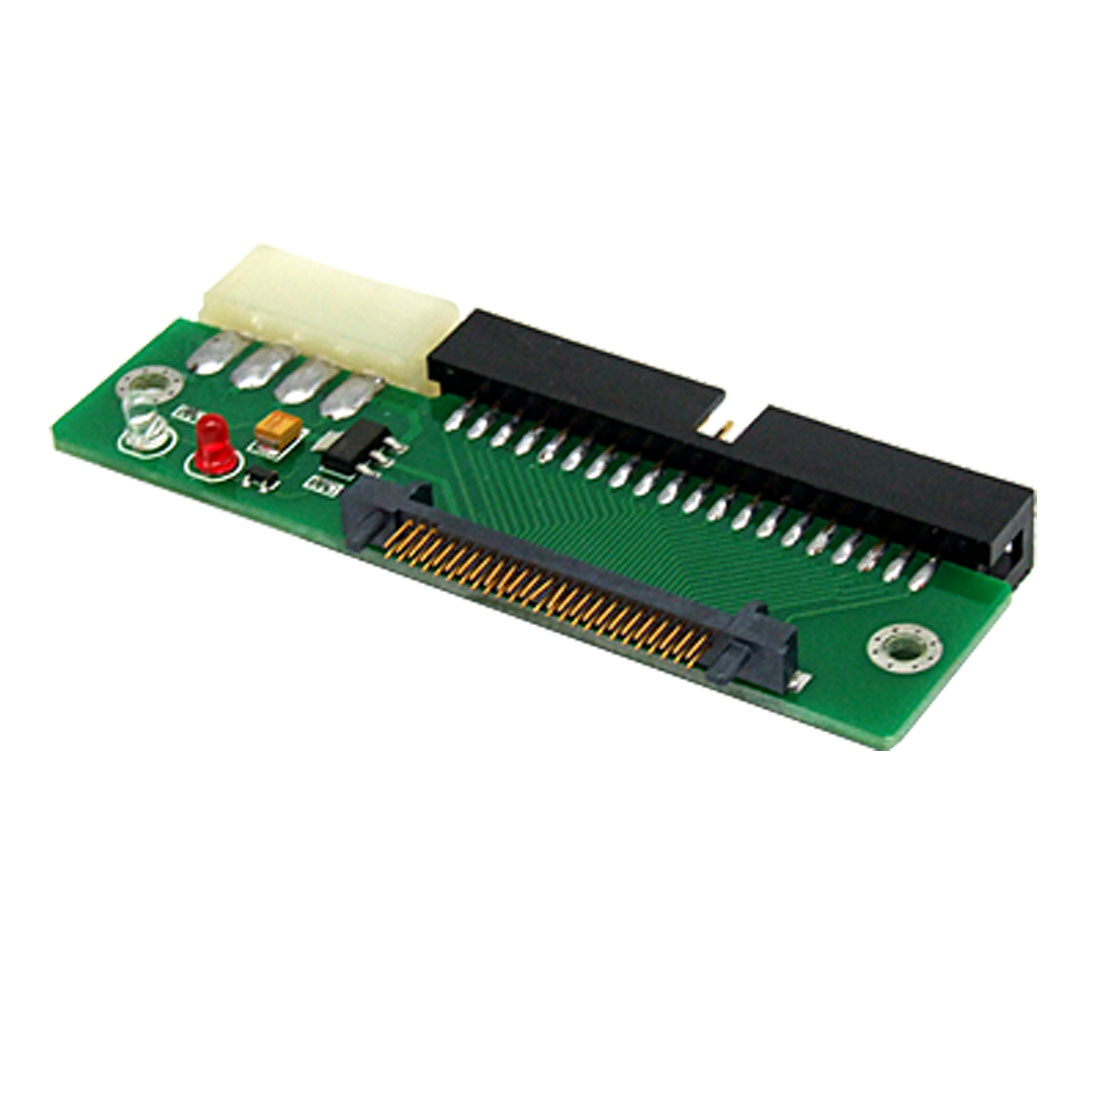 """1.8"""" IDE to 3.5"""" IDE HDD Hard Drive Adapter Converter"""